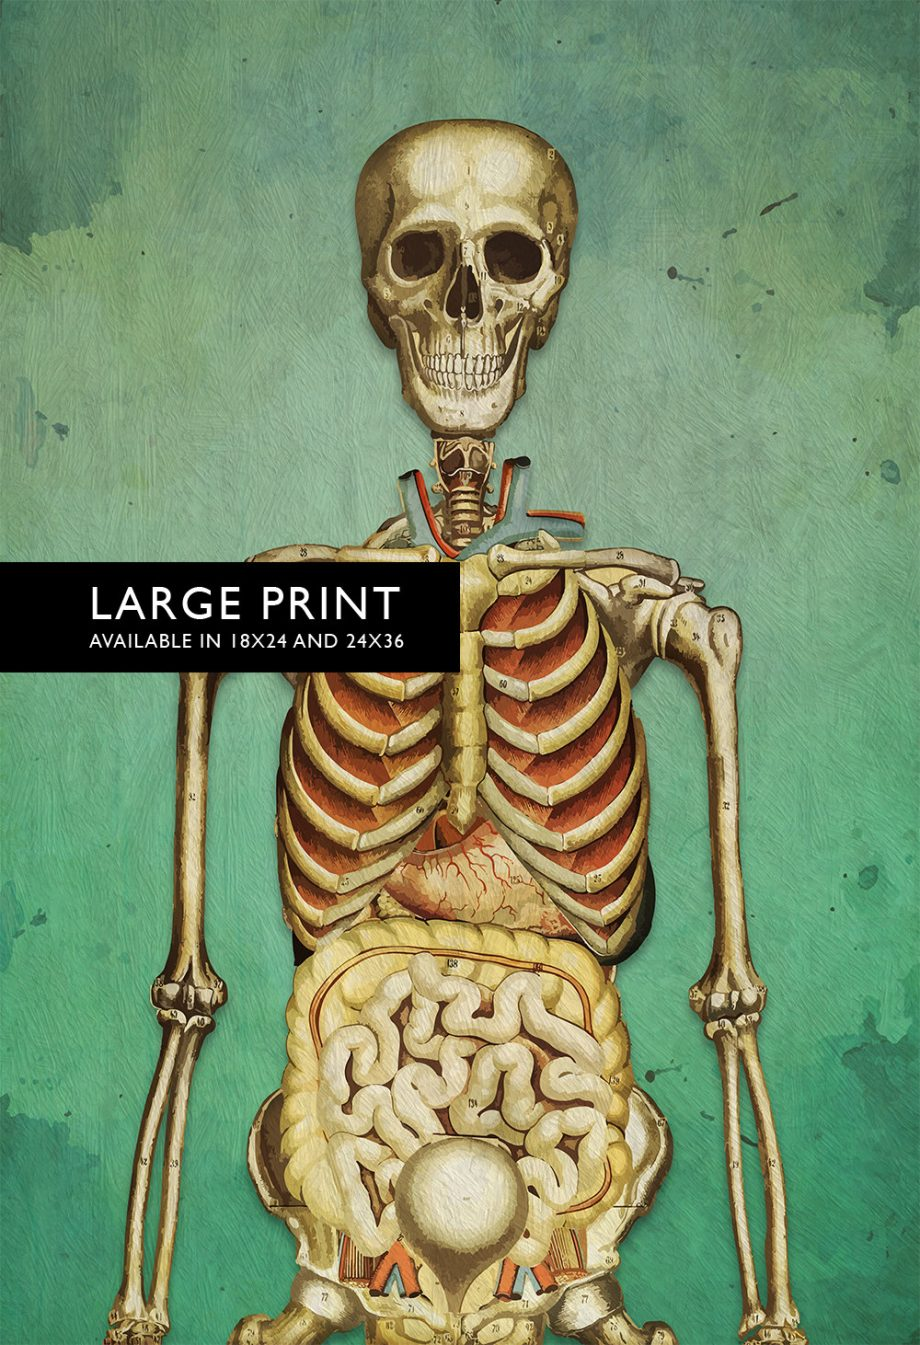 "Medical Illustration Skeleton Print Vintage Illustrated Human Giclee Cotton Canvas or Satin Paper Wall Decor Art Print 18x24"" 24x36"""